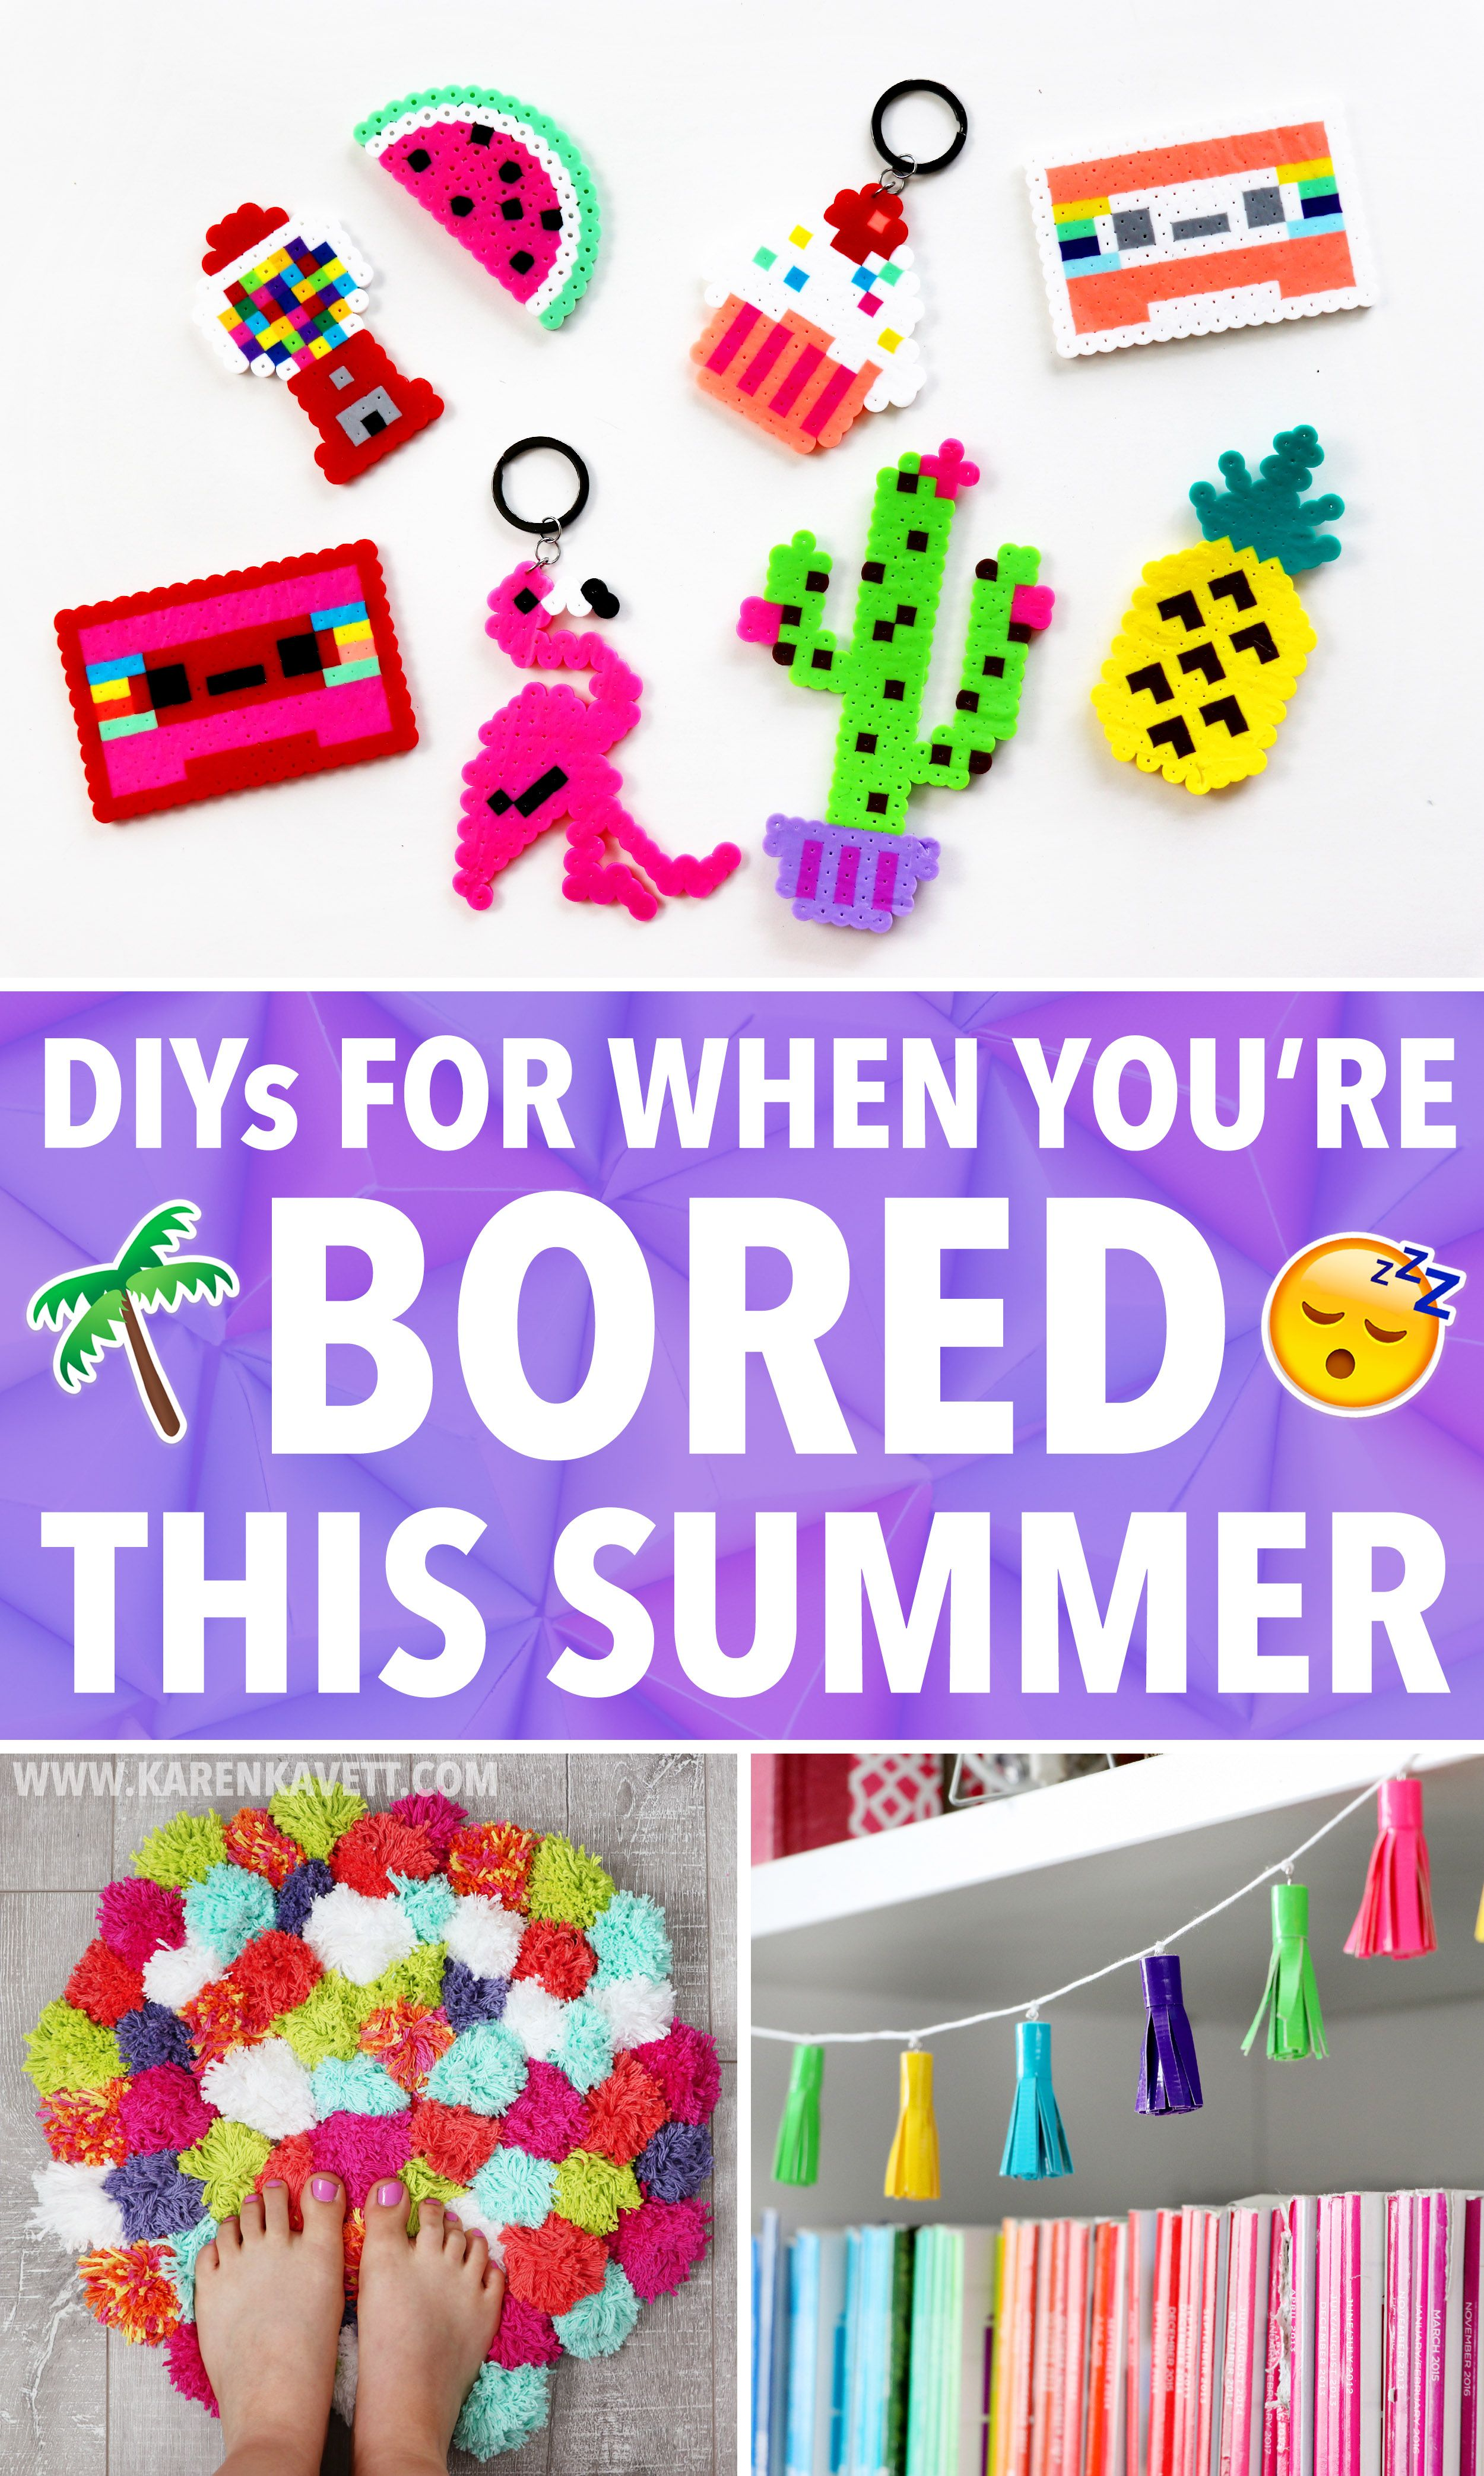 Easy Diy Ideas For When You Re Bored This Summer Karen Kavett